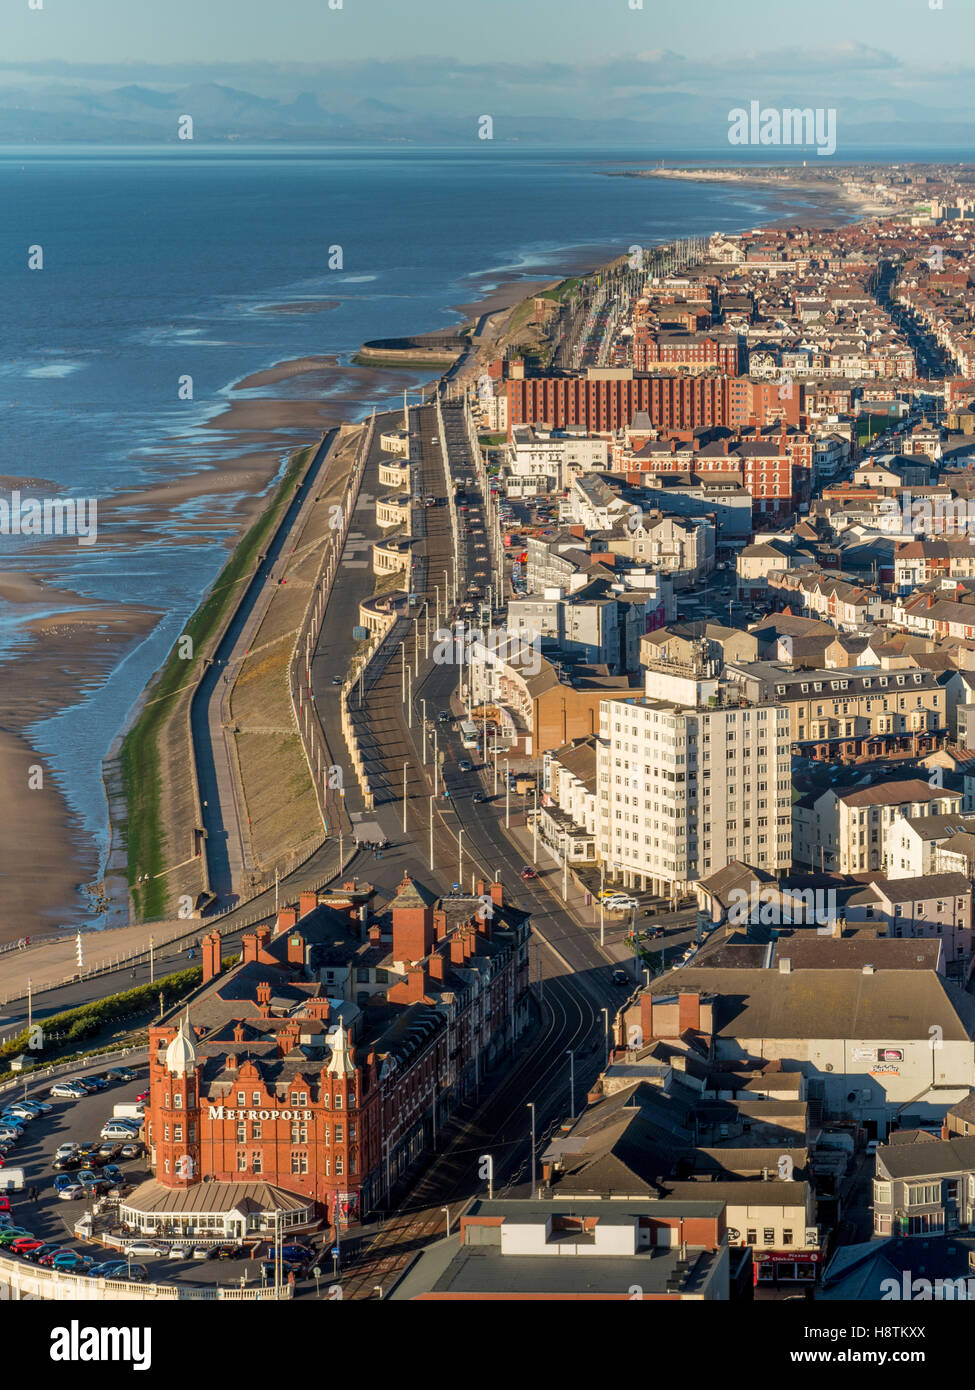 Metropole Hotel, North seafront, Blackpool, Lancashire, UK. - Stock Image